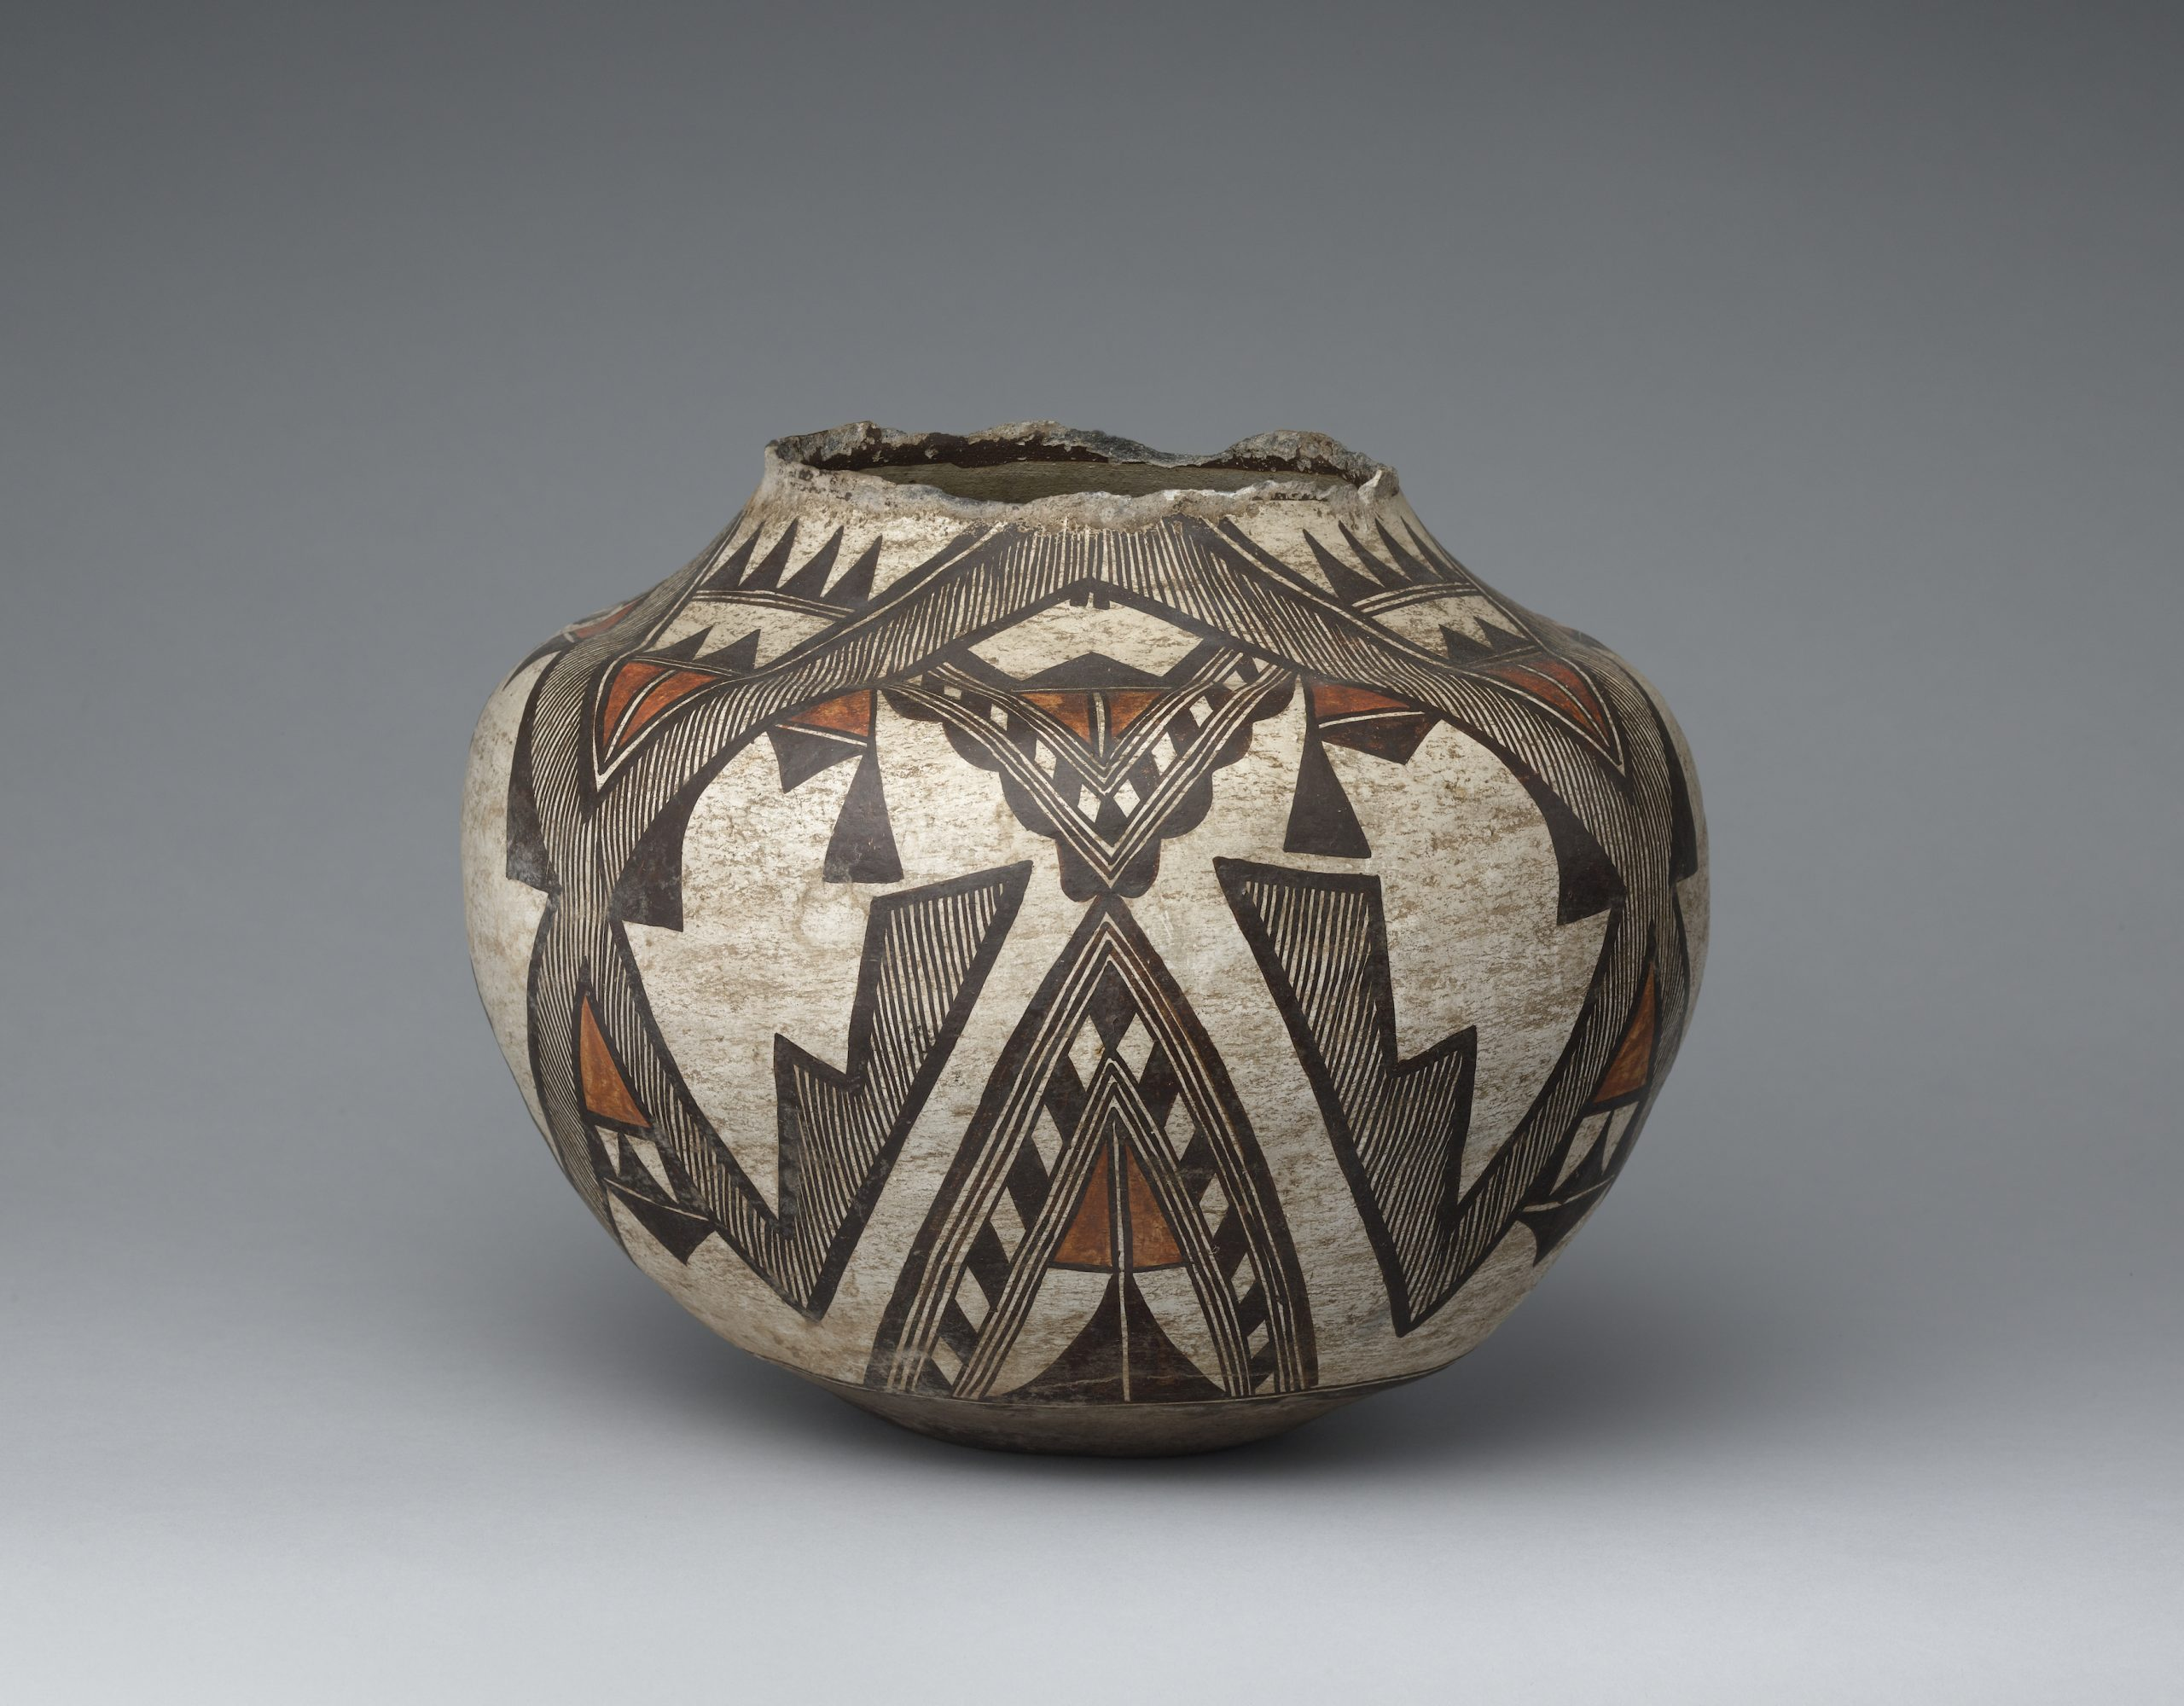 A Zuni olla with a stylized wing design primarily composed of lines and triangular shapes.